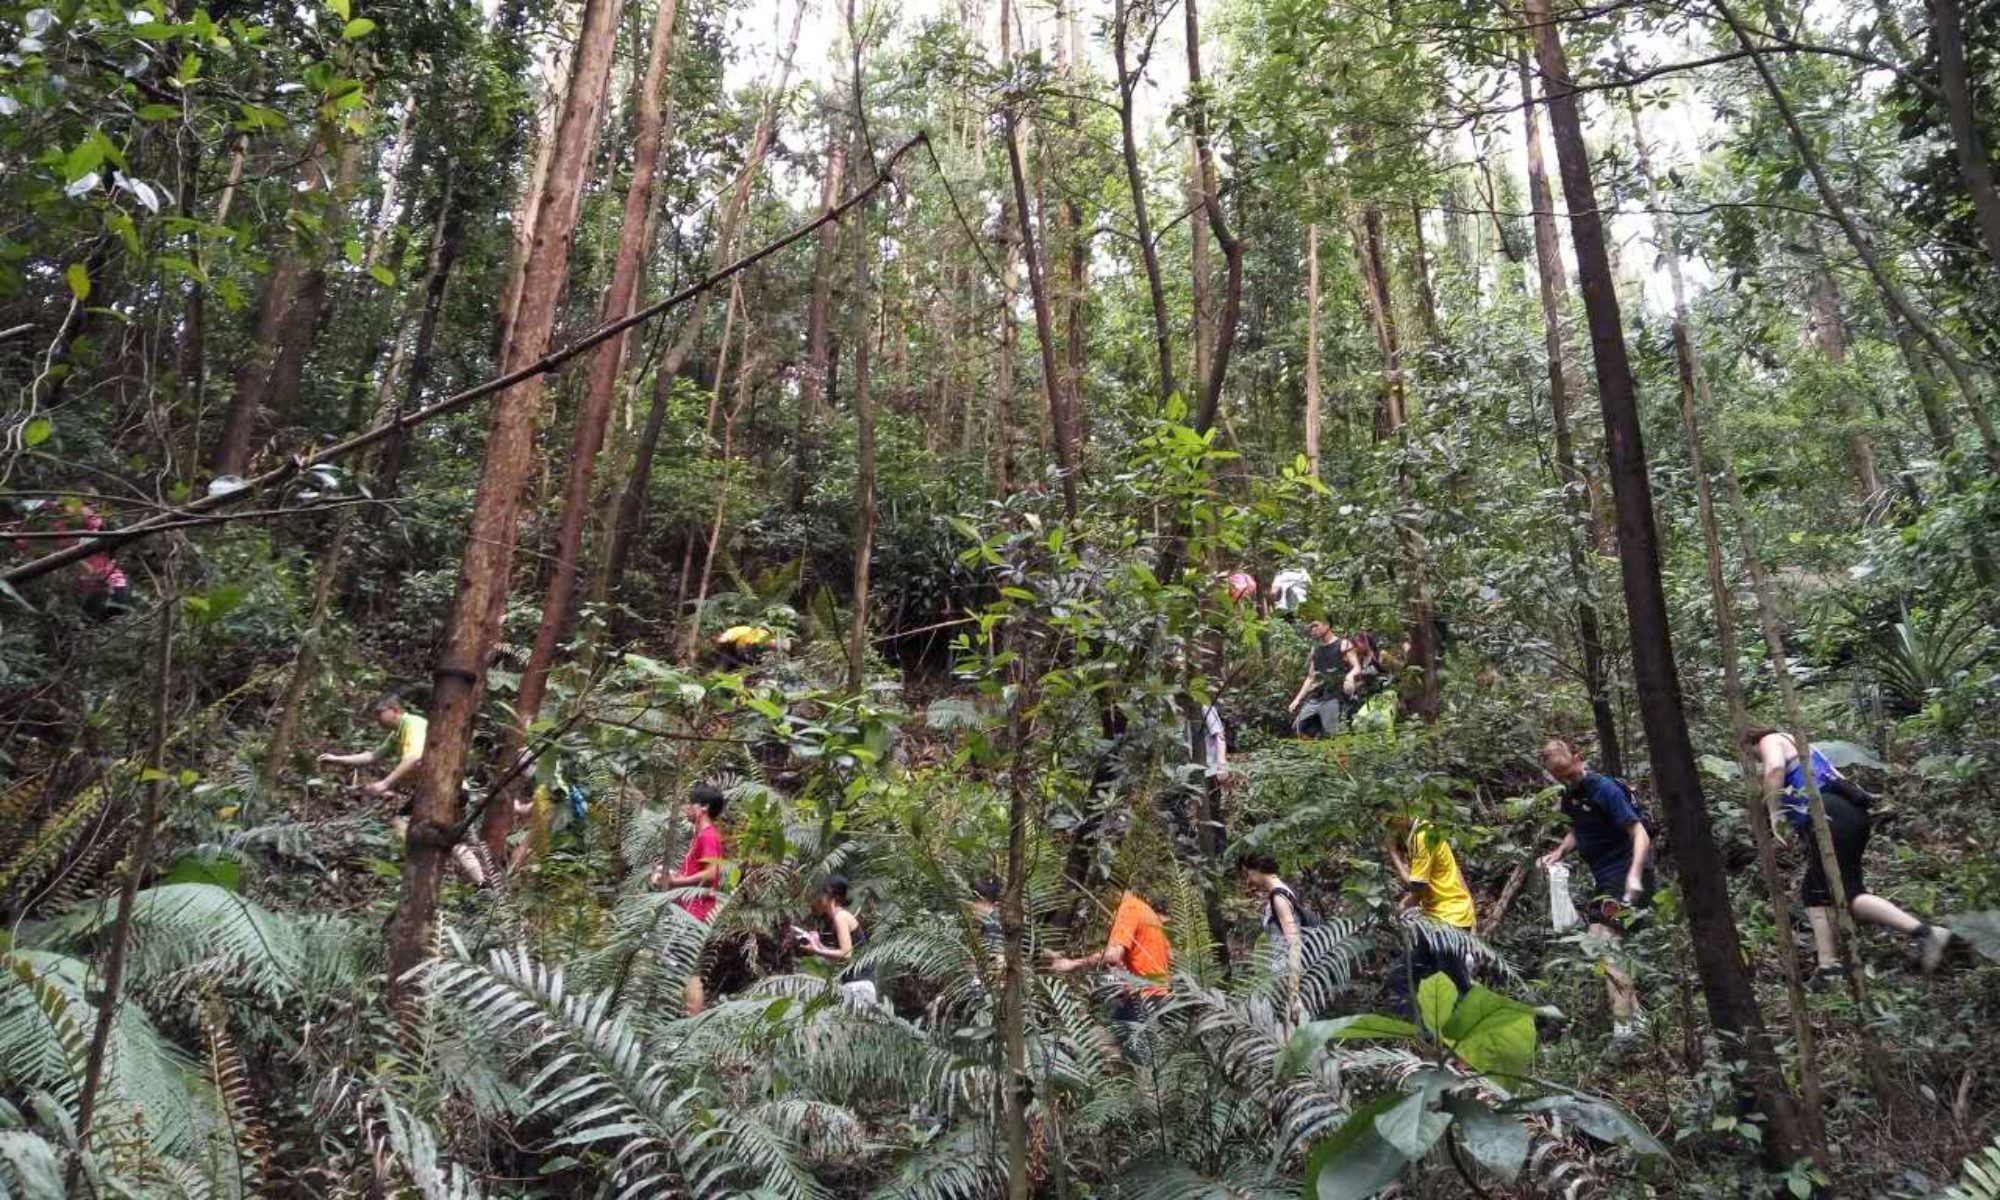 Guangzhou Hash House Harriers